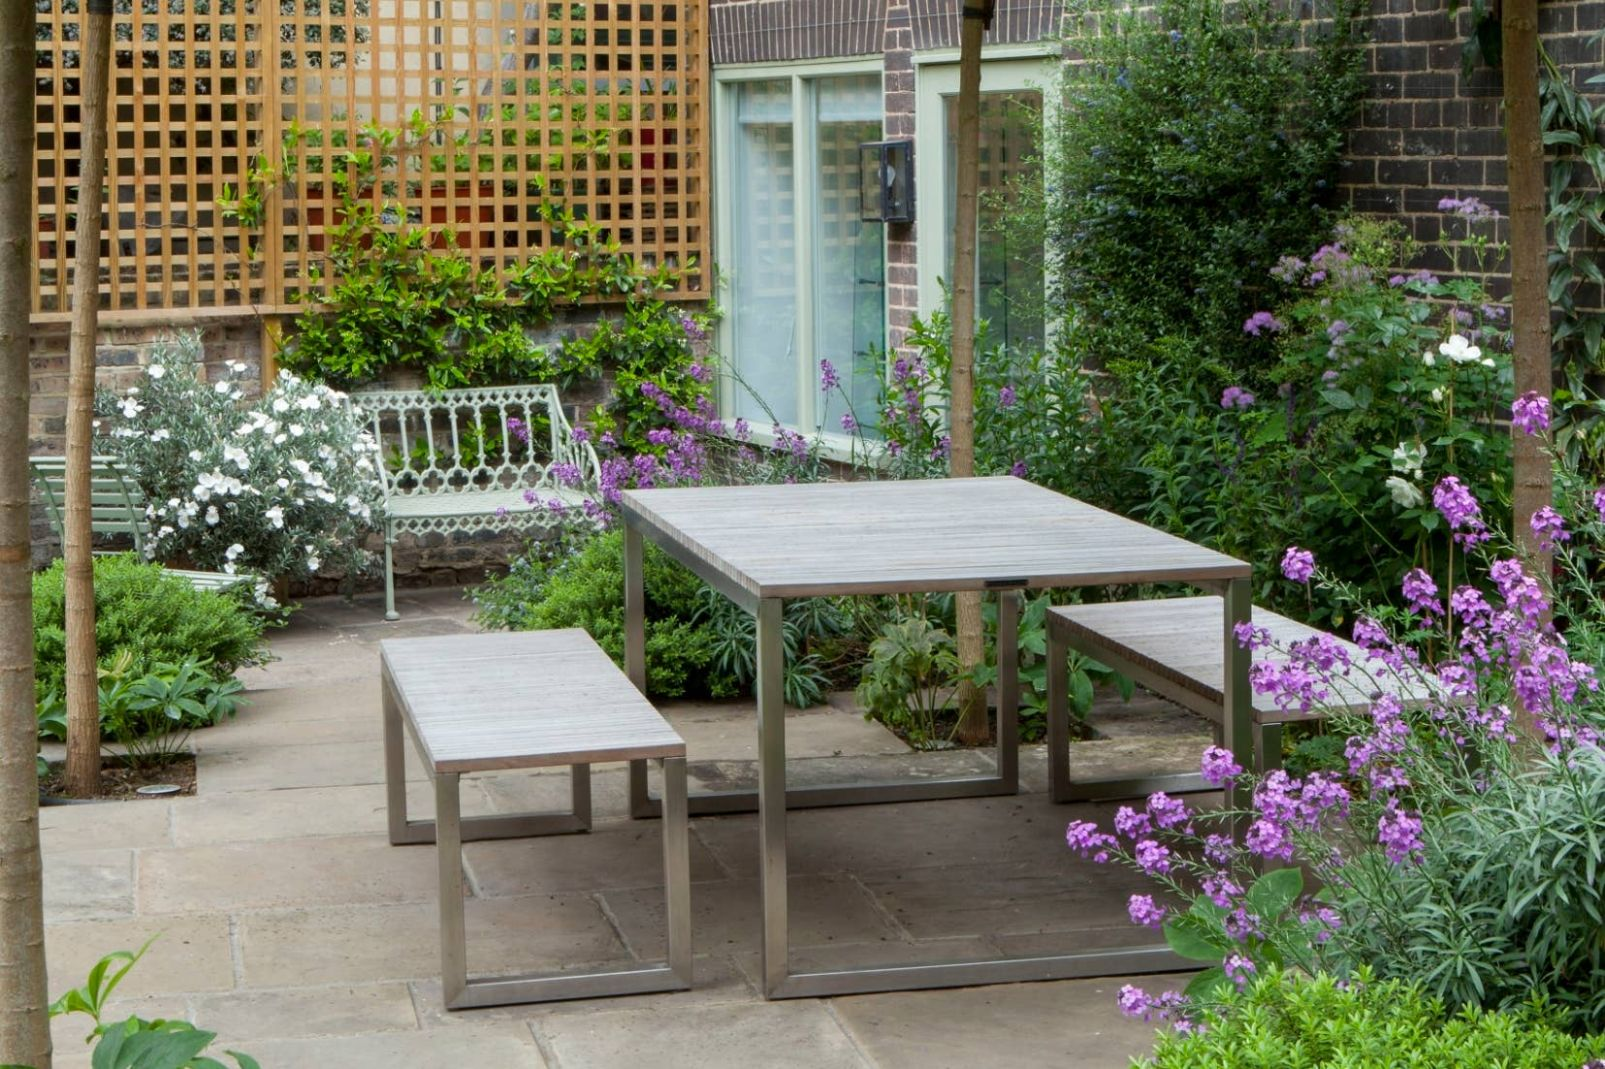 No more nosy neighbours: how to get garden privacy in your London ...